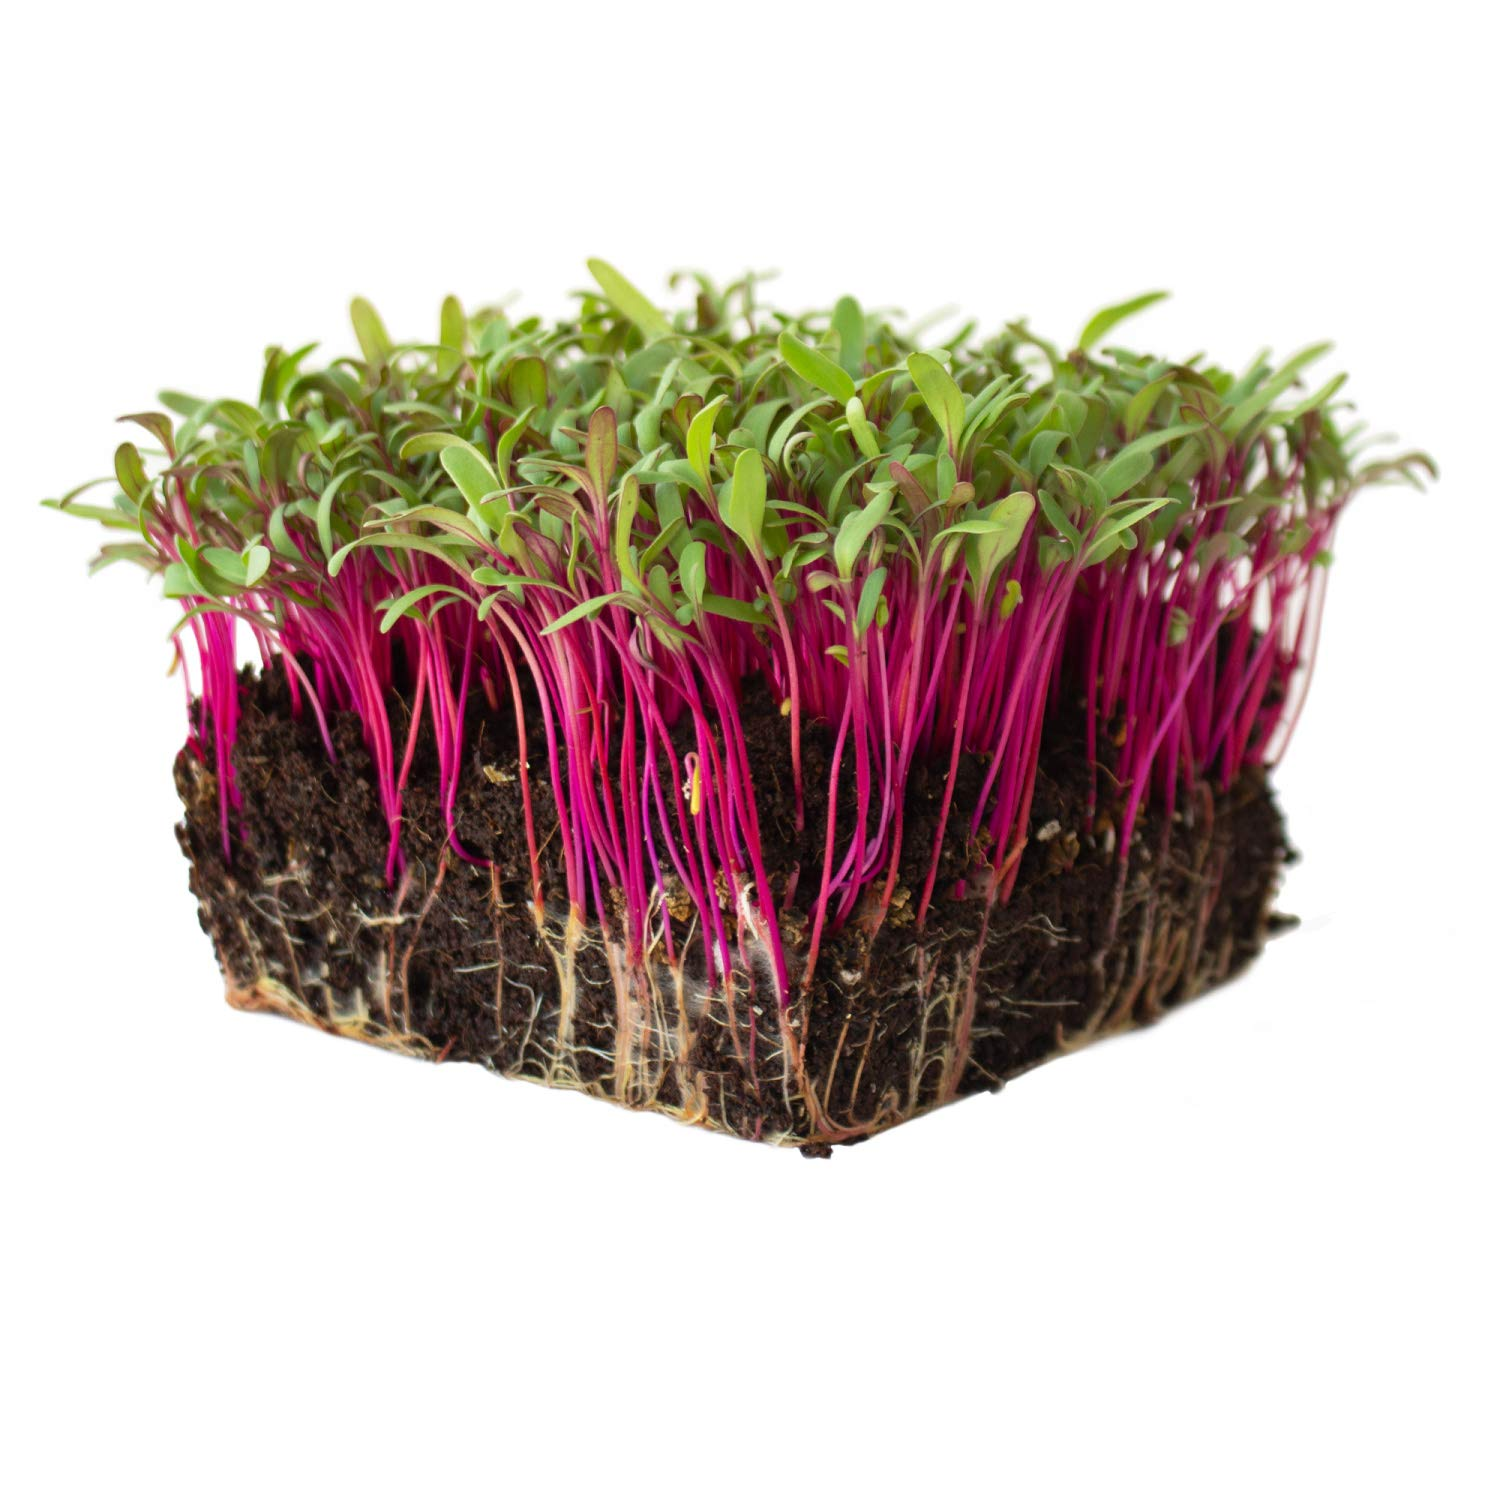 Bulls Blood Beet Seeds - 1 Lb - Non-GMO, Heirloom - Vegetable Garden, Microgreens Seeds by Mountain Valley Seed Company